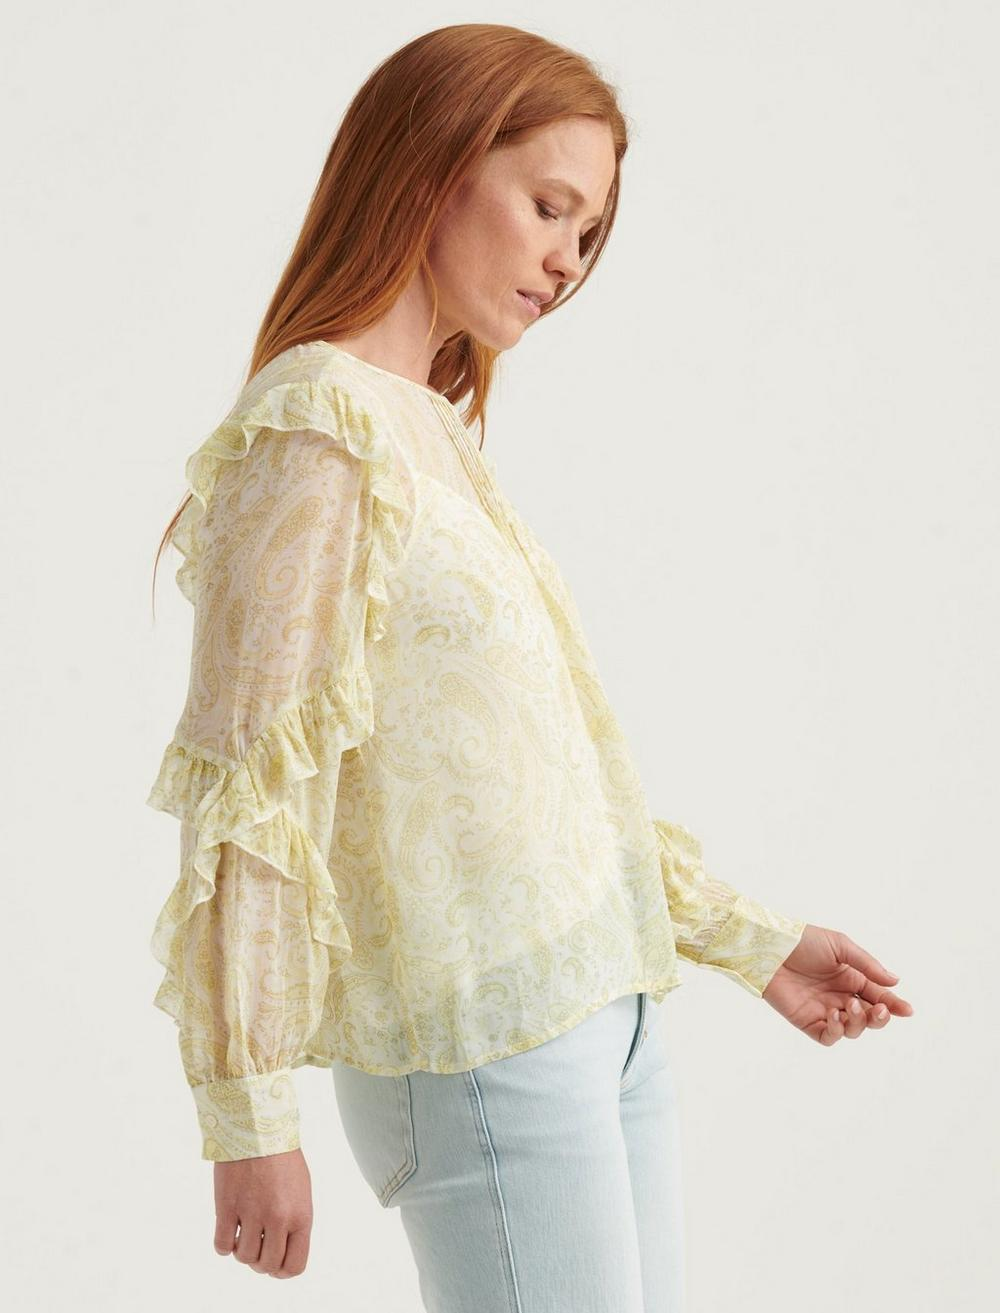 GEORGETTE RUFFLE BLOUSE TOP, image 3